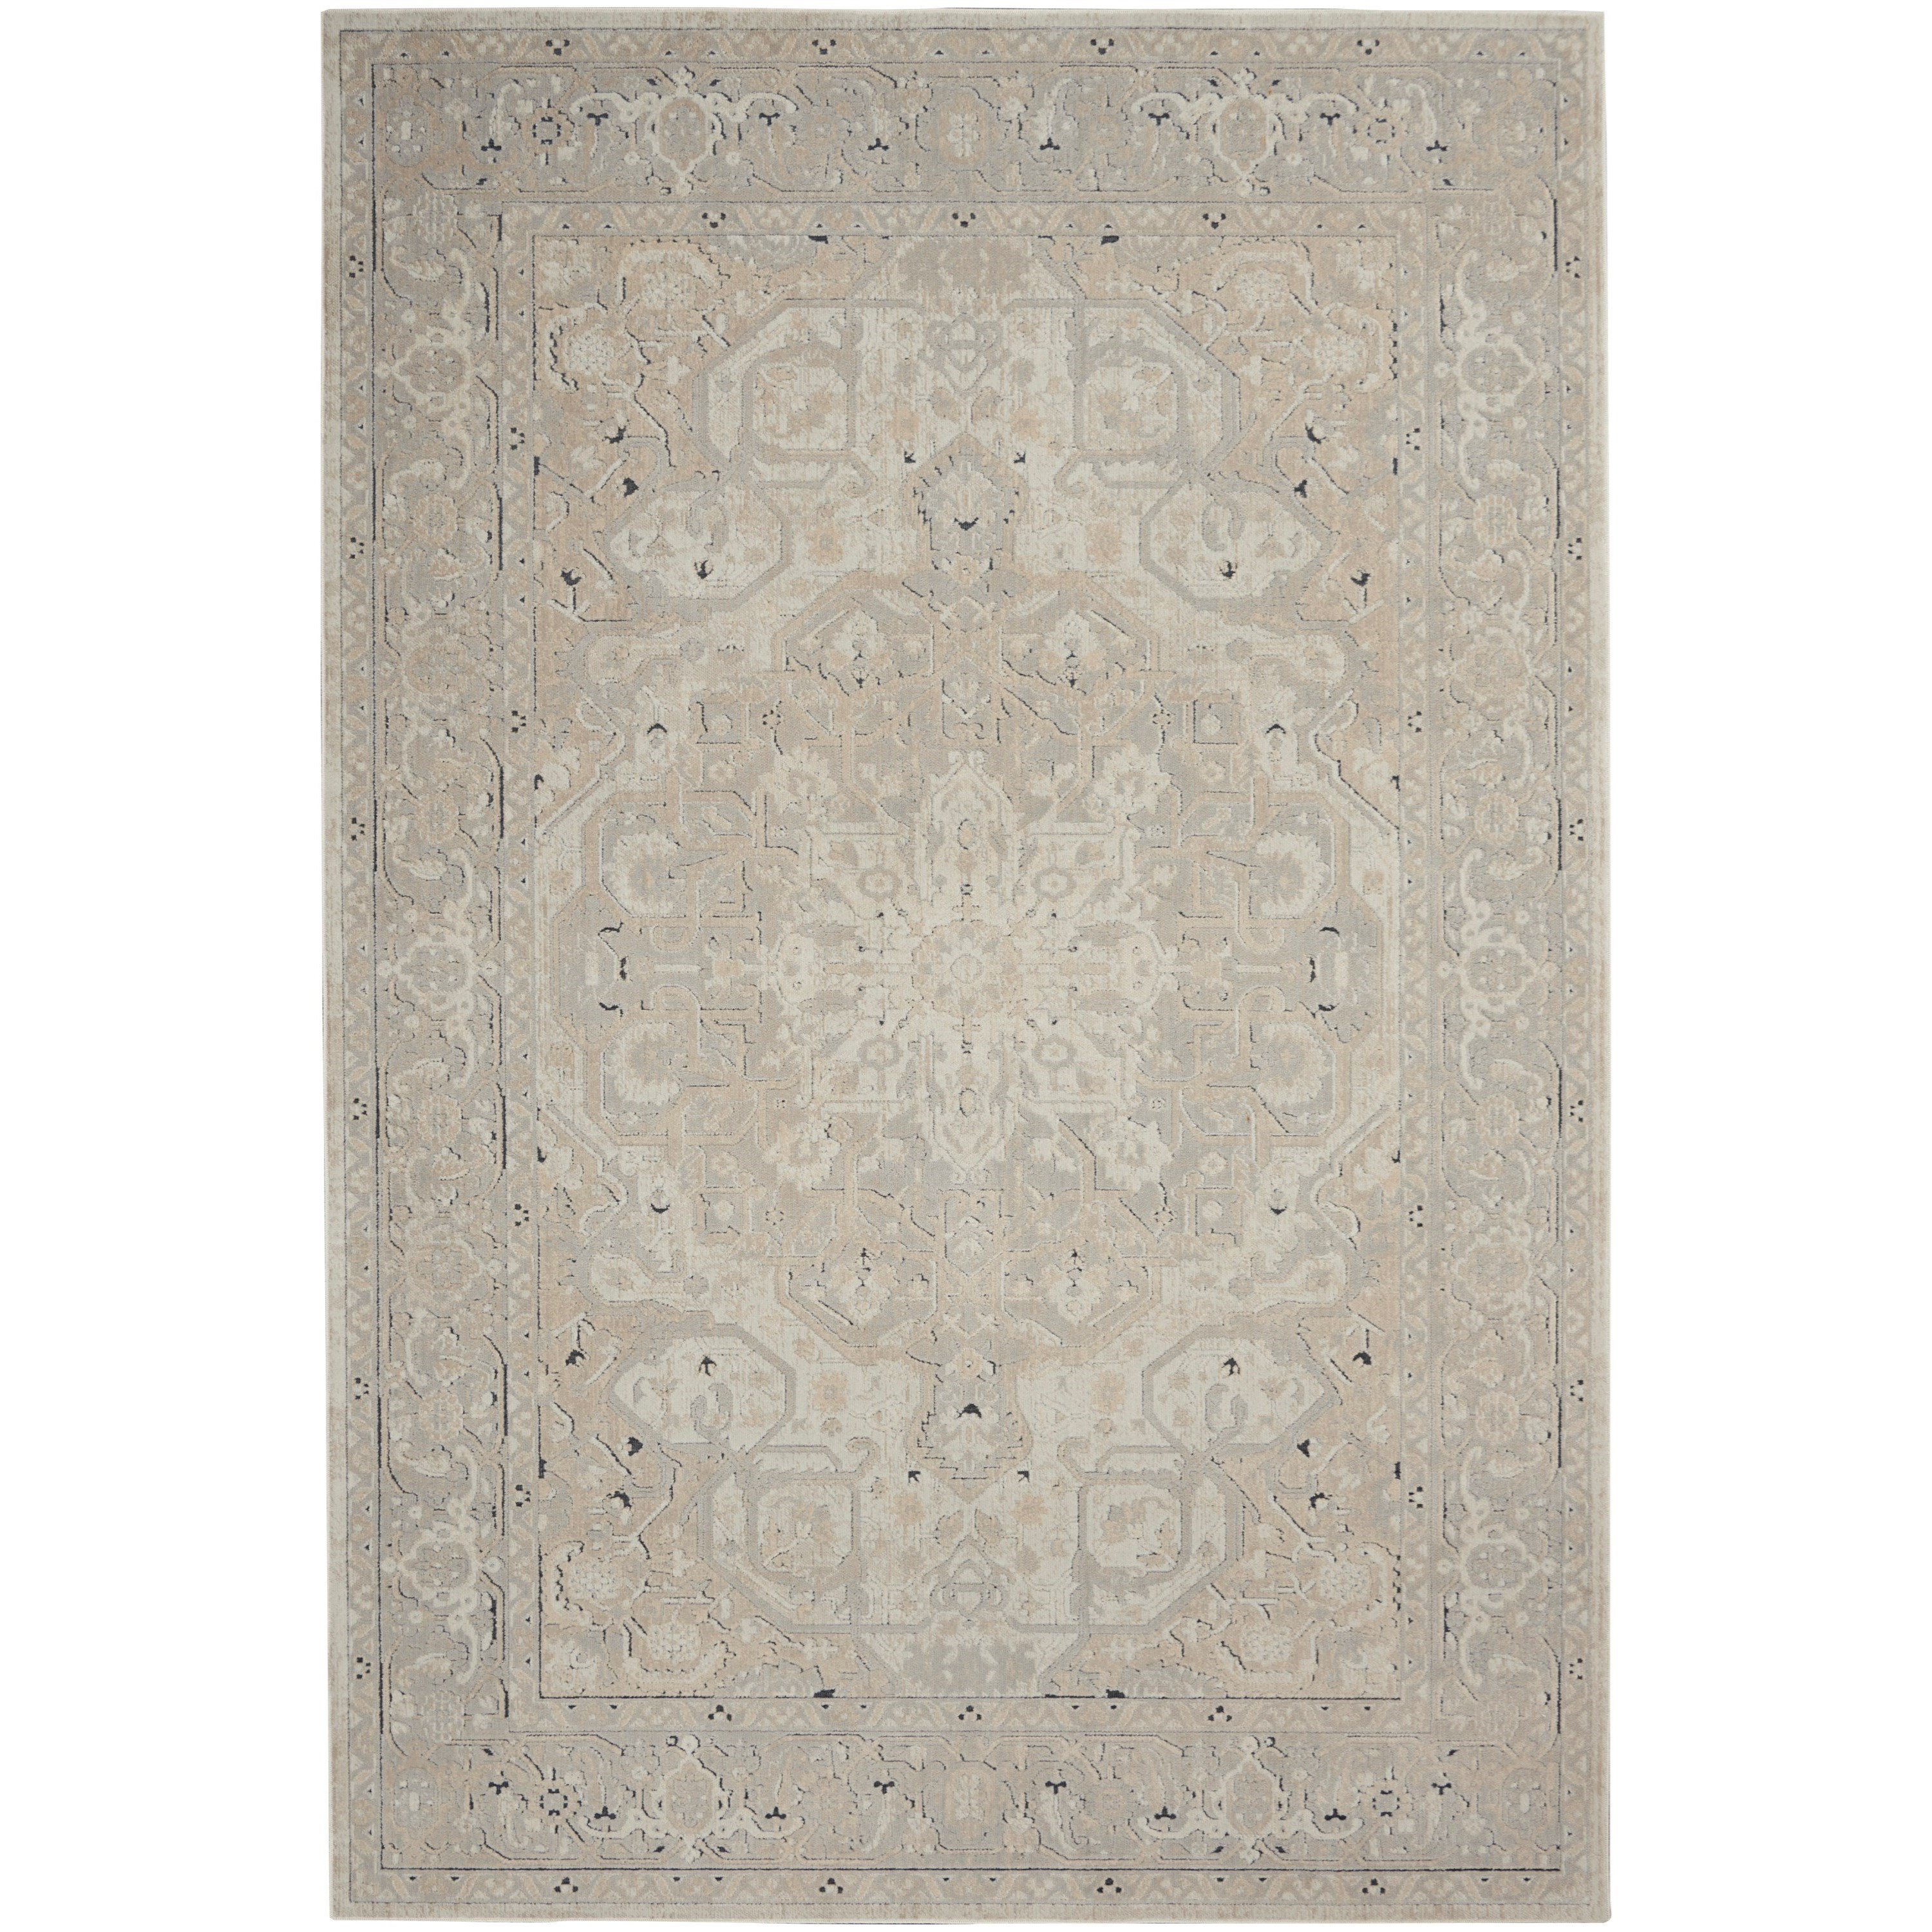 Malta 2020 4' x 6' Rug by Nourison at Home Collections Furniture